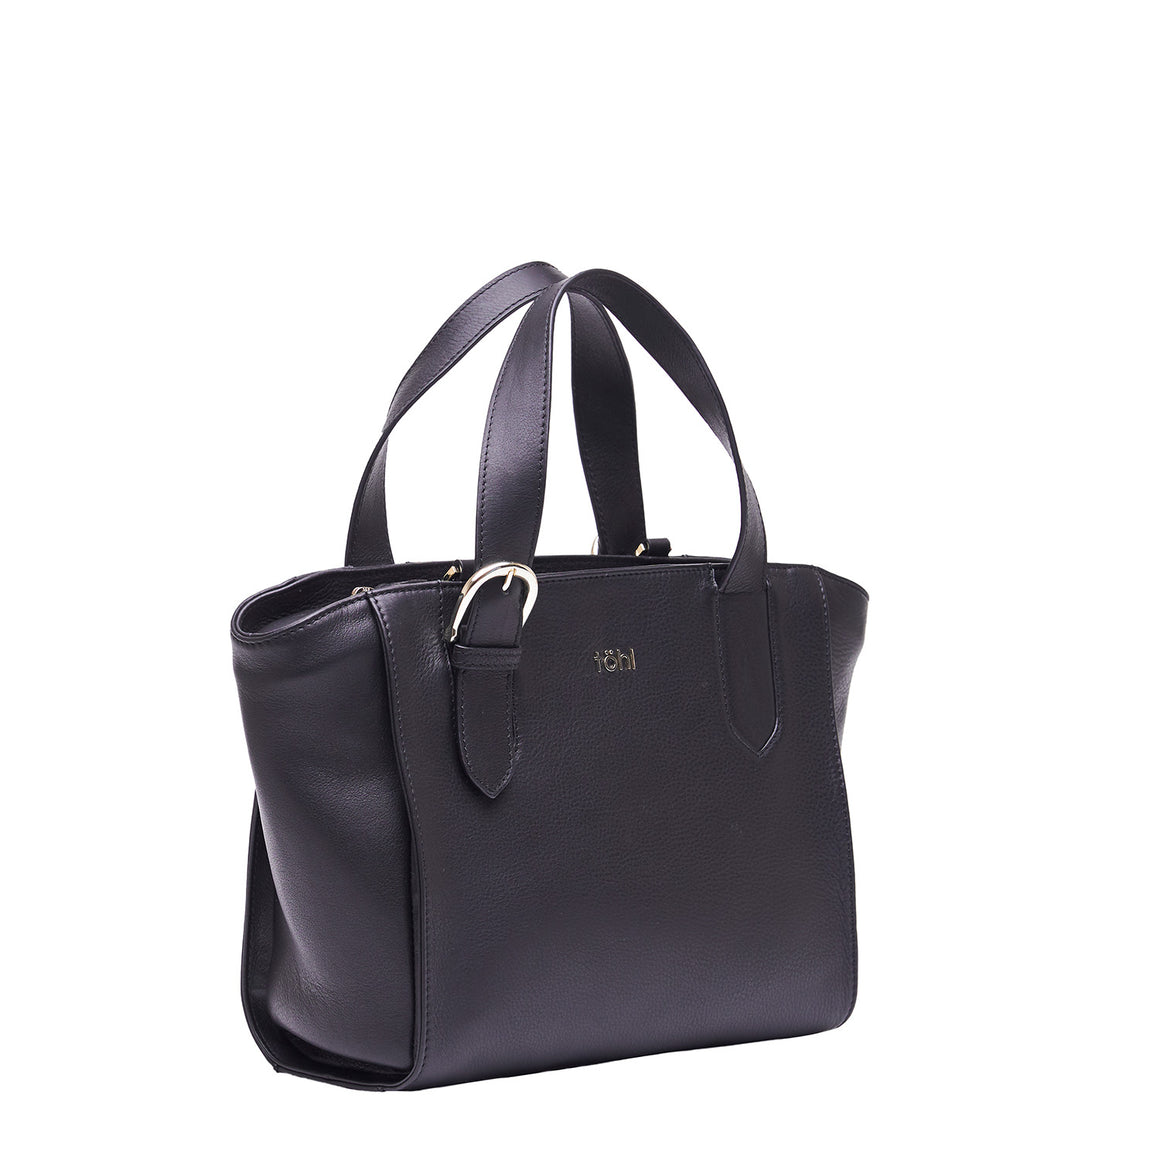 HH 0020 - TOHL LOMBARD WOMEN'S HAND BAG - CHARCOAL BLACK